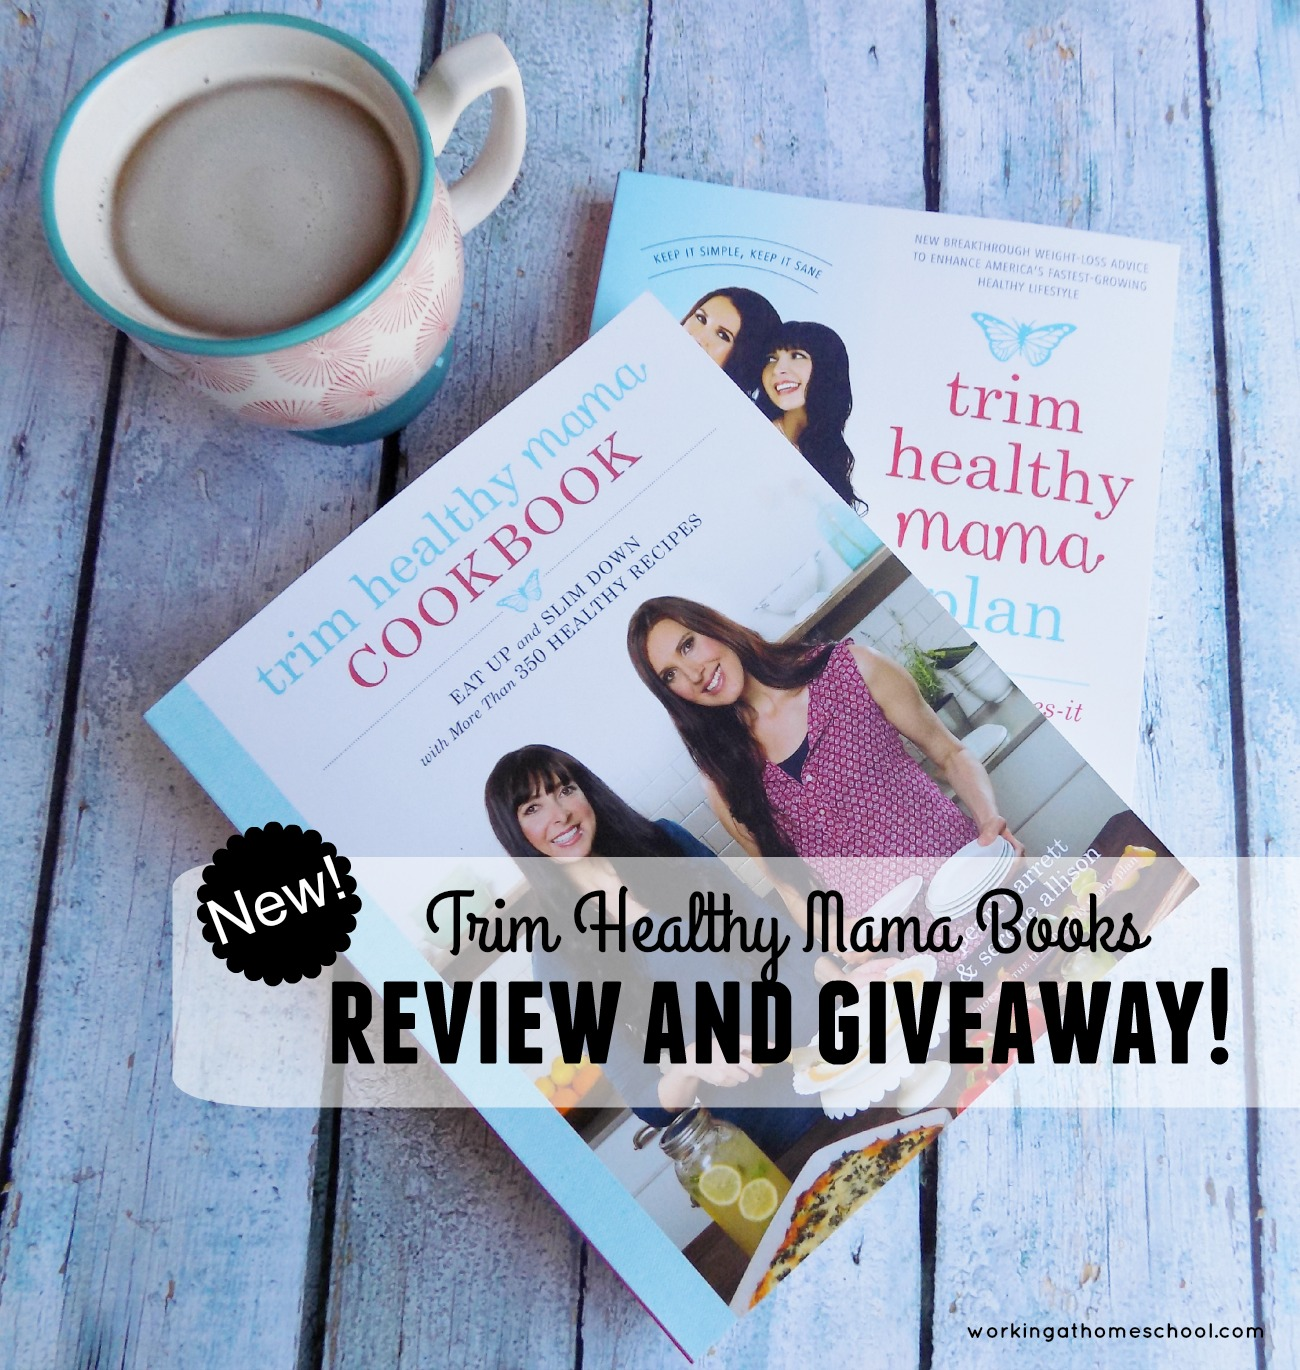 Trim Healthy Mama Review and Giveaway!